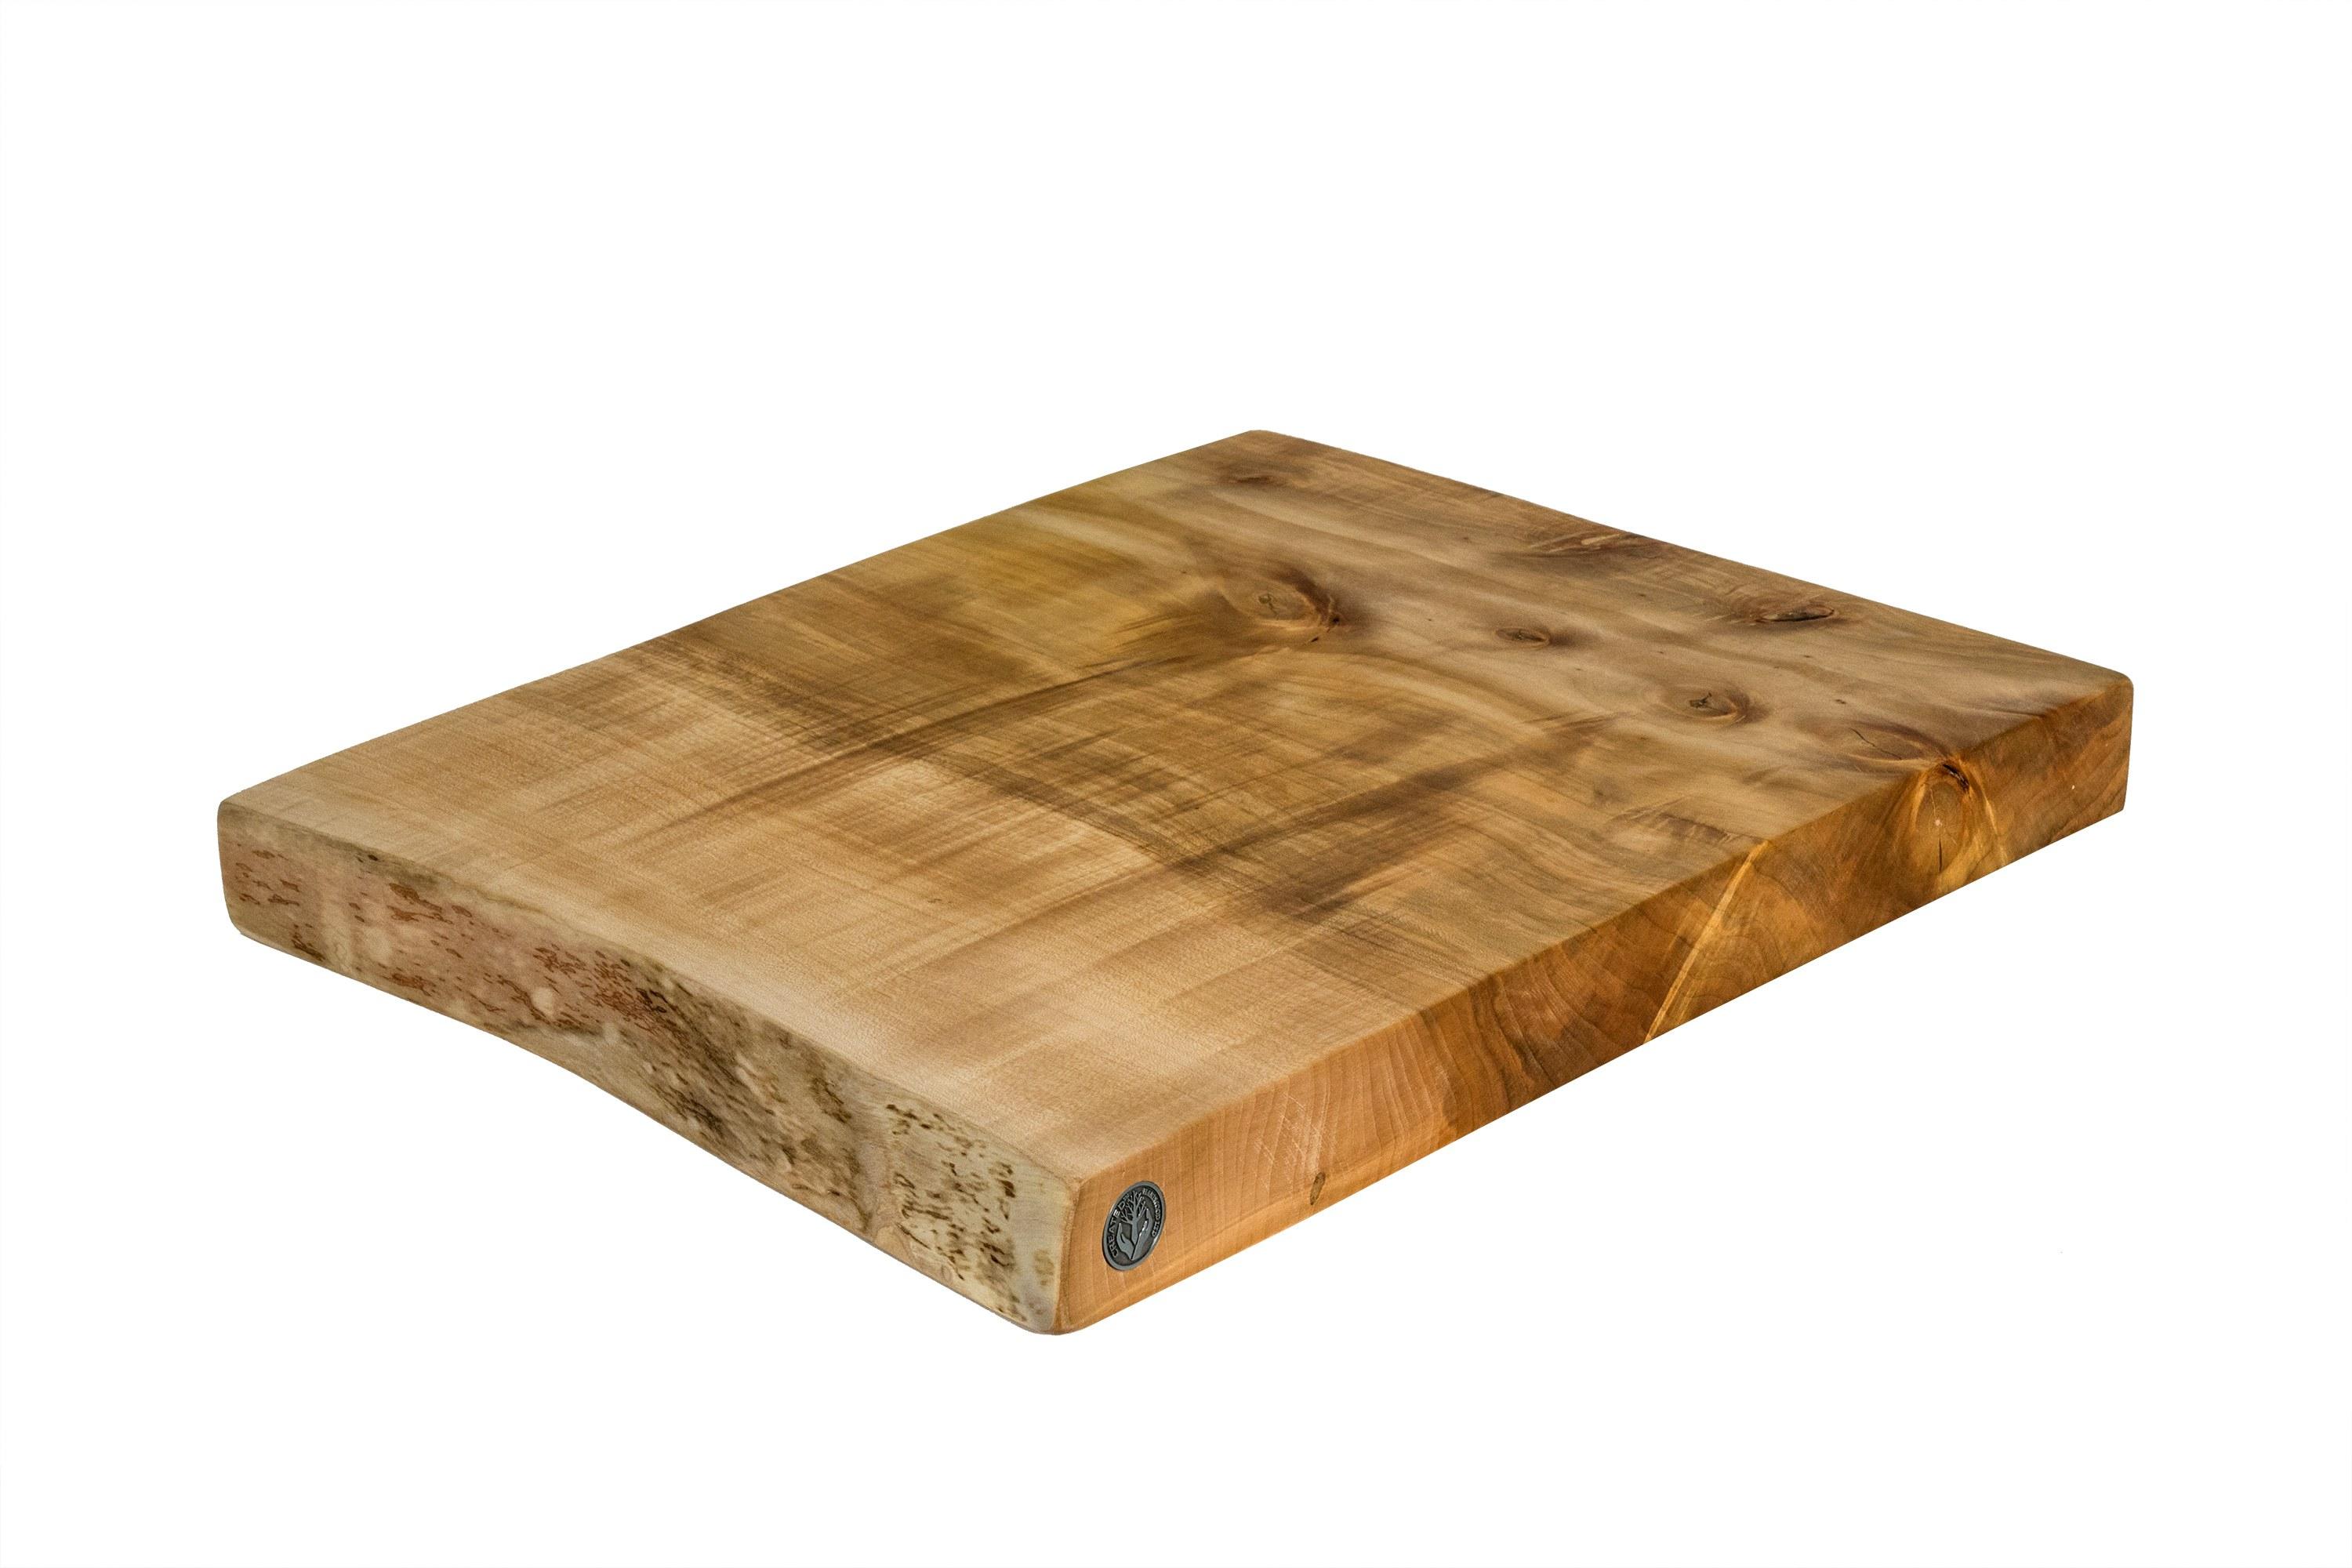 Live Edge Maple Cutting Board #012 - 15